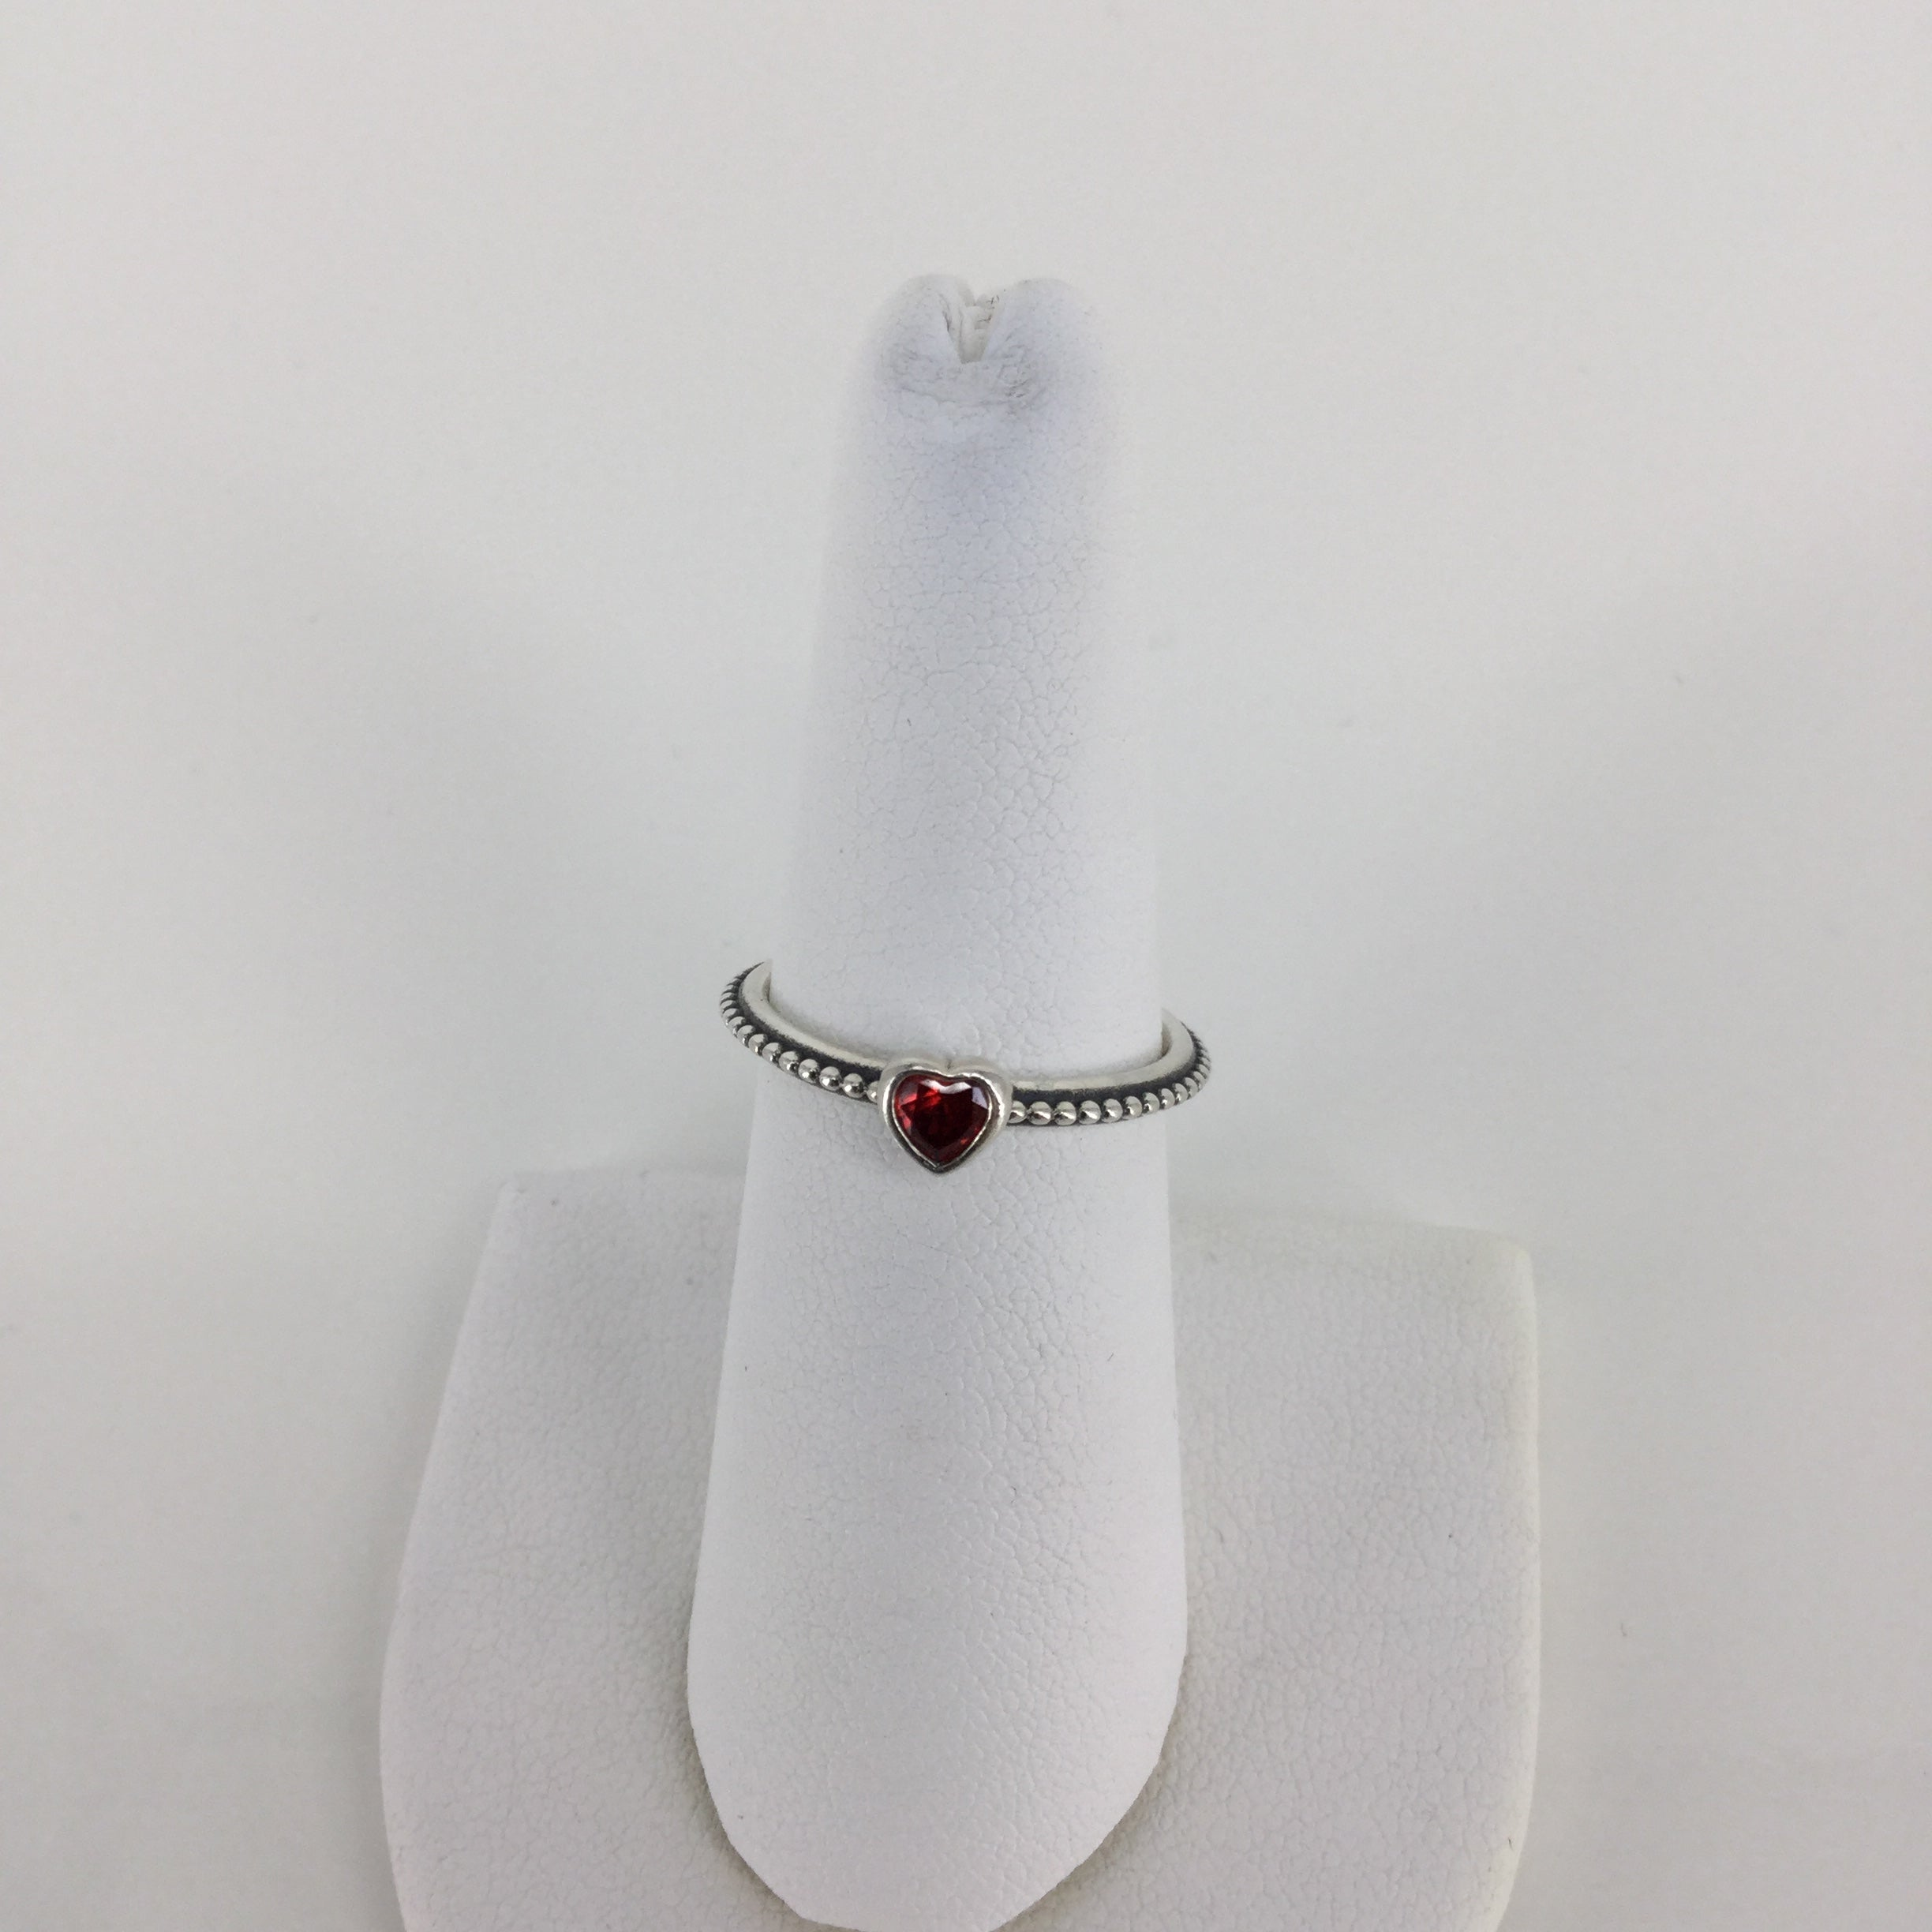 JEWELRY, - LOVELY PANDORA SILVER RING WITH TINY RED HEART GEM. BEADED DETAIL ON THE THIN BAND. PERFECT FOR ANYONE WHO LOVES HEARTS AND SUBTLE JEWELRY!